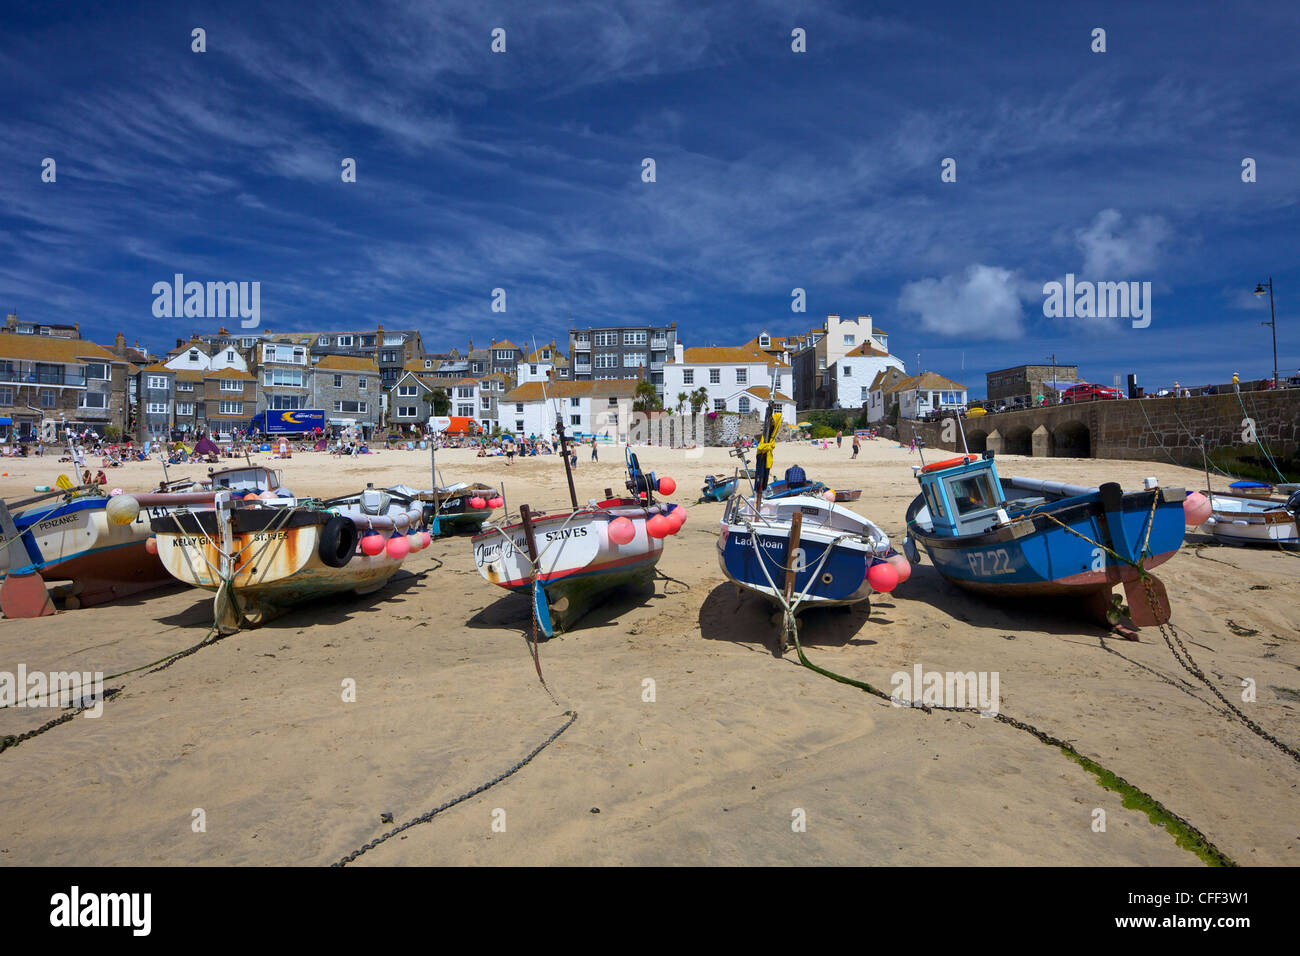 Fishing boats in the old harbour, St. Ives, Cornwall, England, United Kingdom, Europe - Stock Image